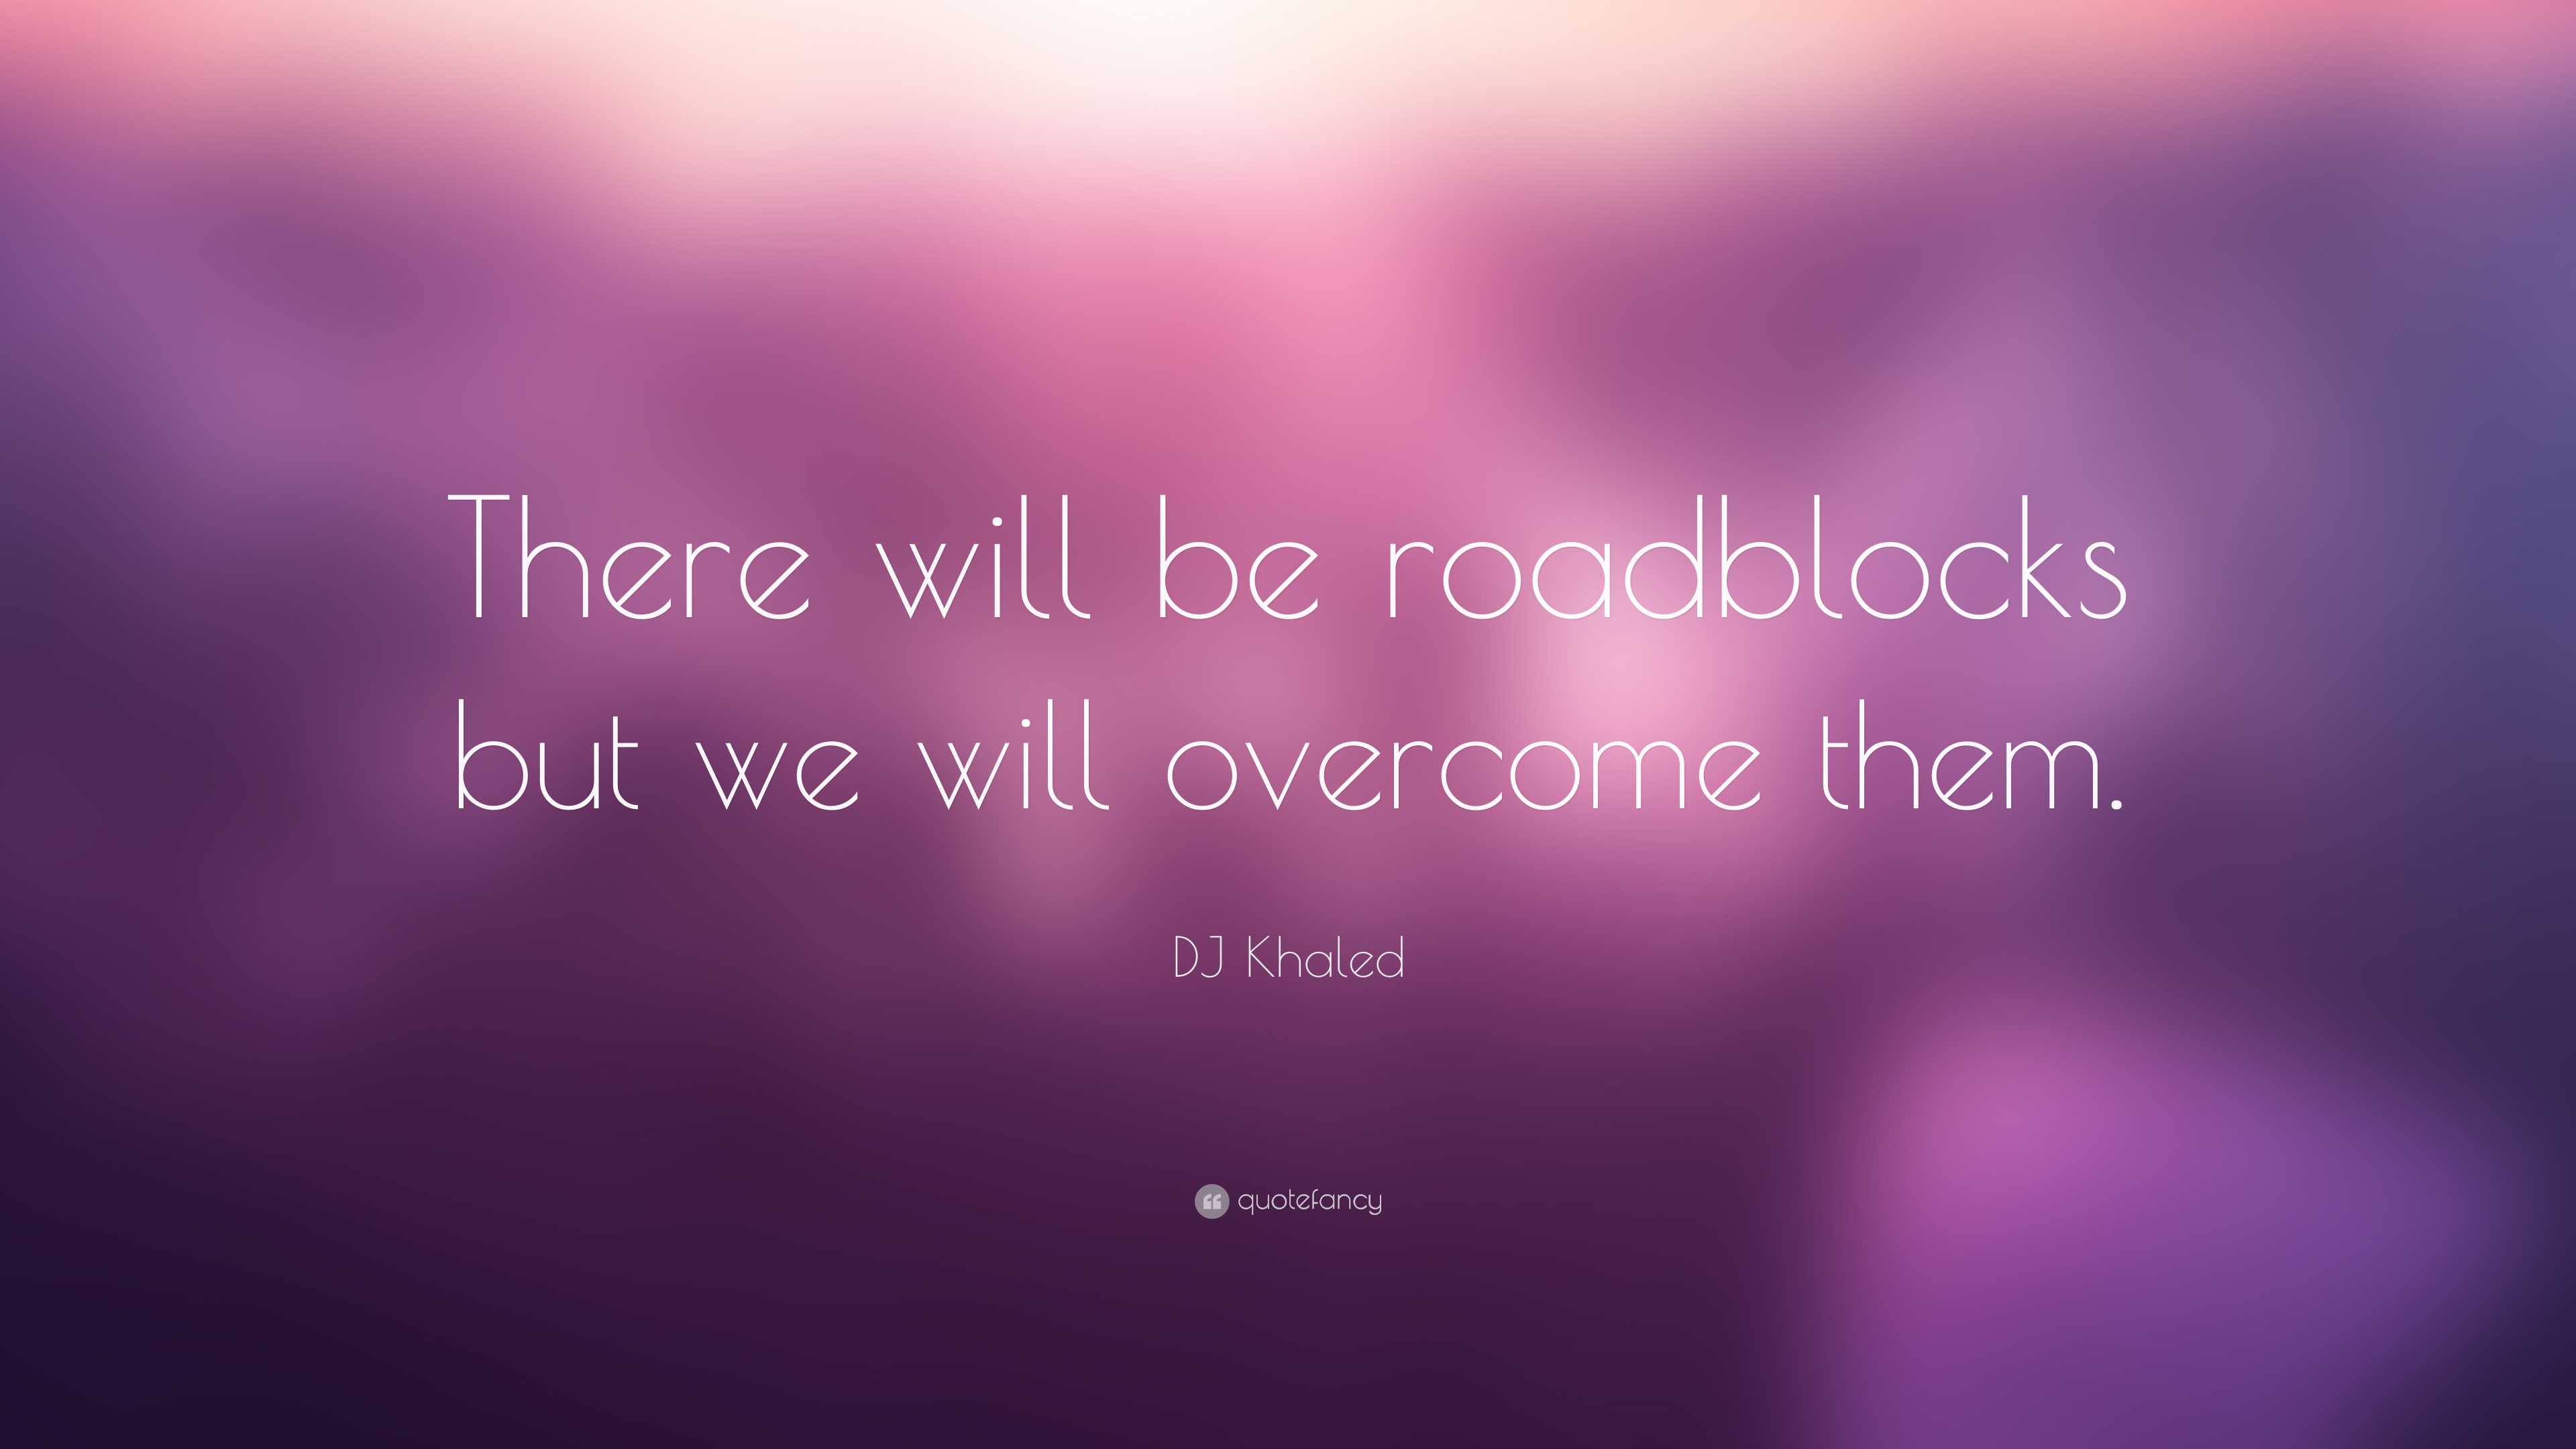 Dj Khaled Quote There Will Be Roadblocks But We Will Overcome Them 17 Wallpapers Quotefancy